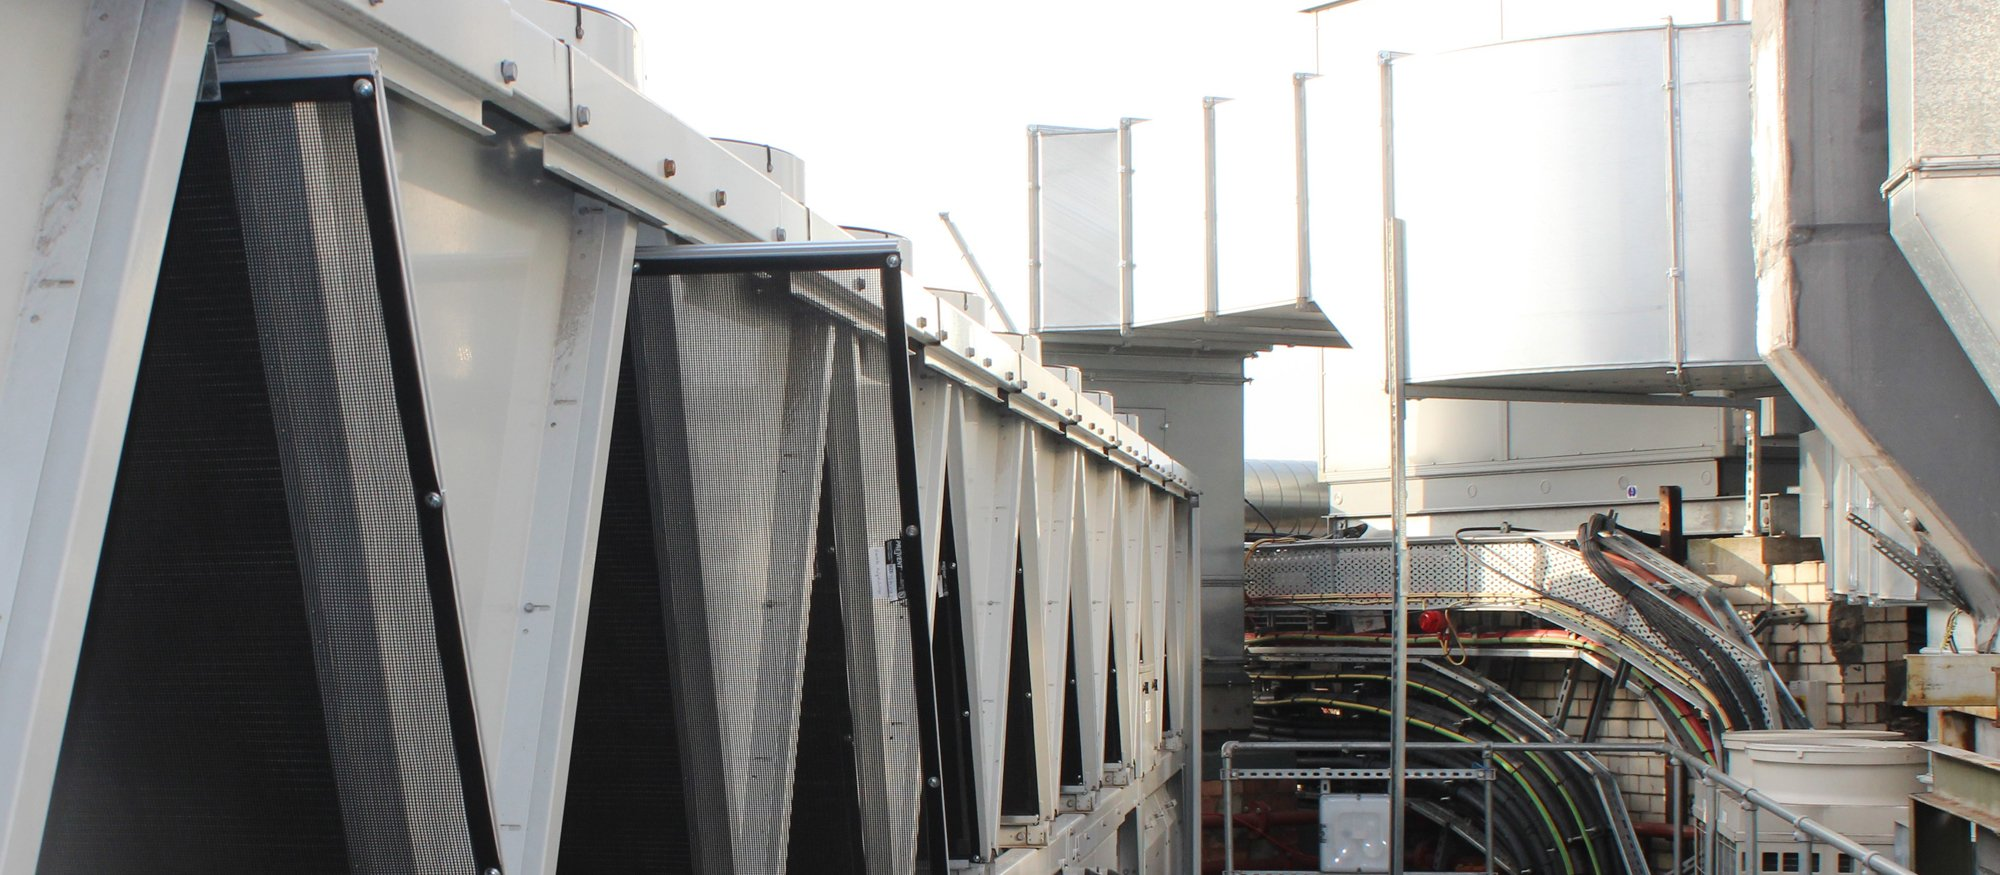 RABScreen slide out air intake filters on a Carrier rooftop chiller